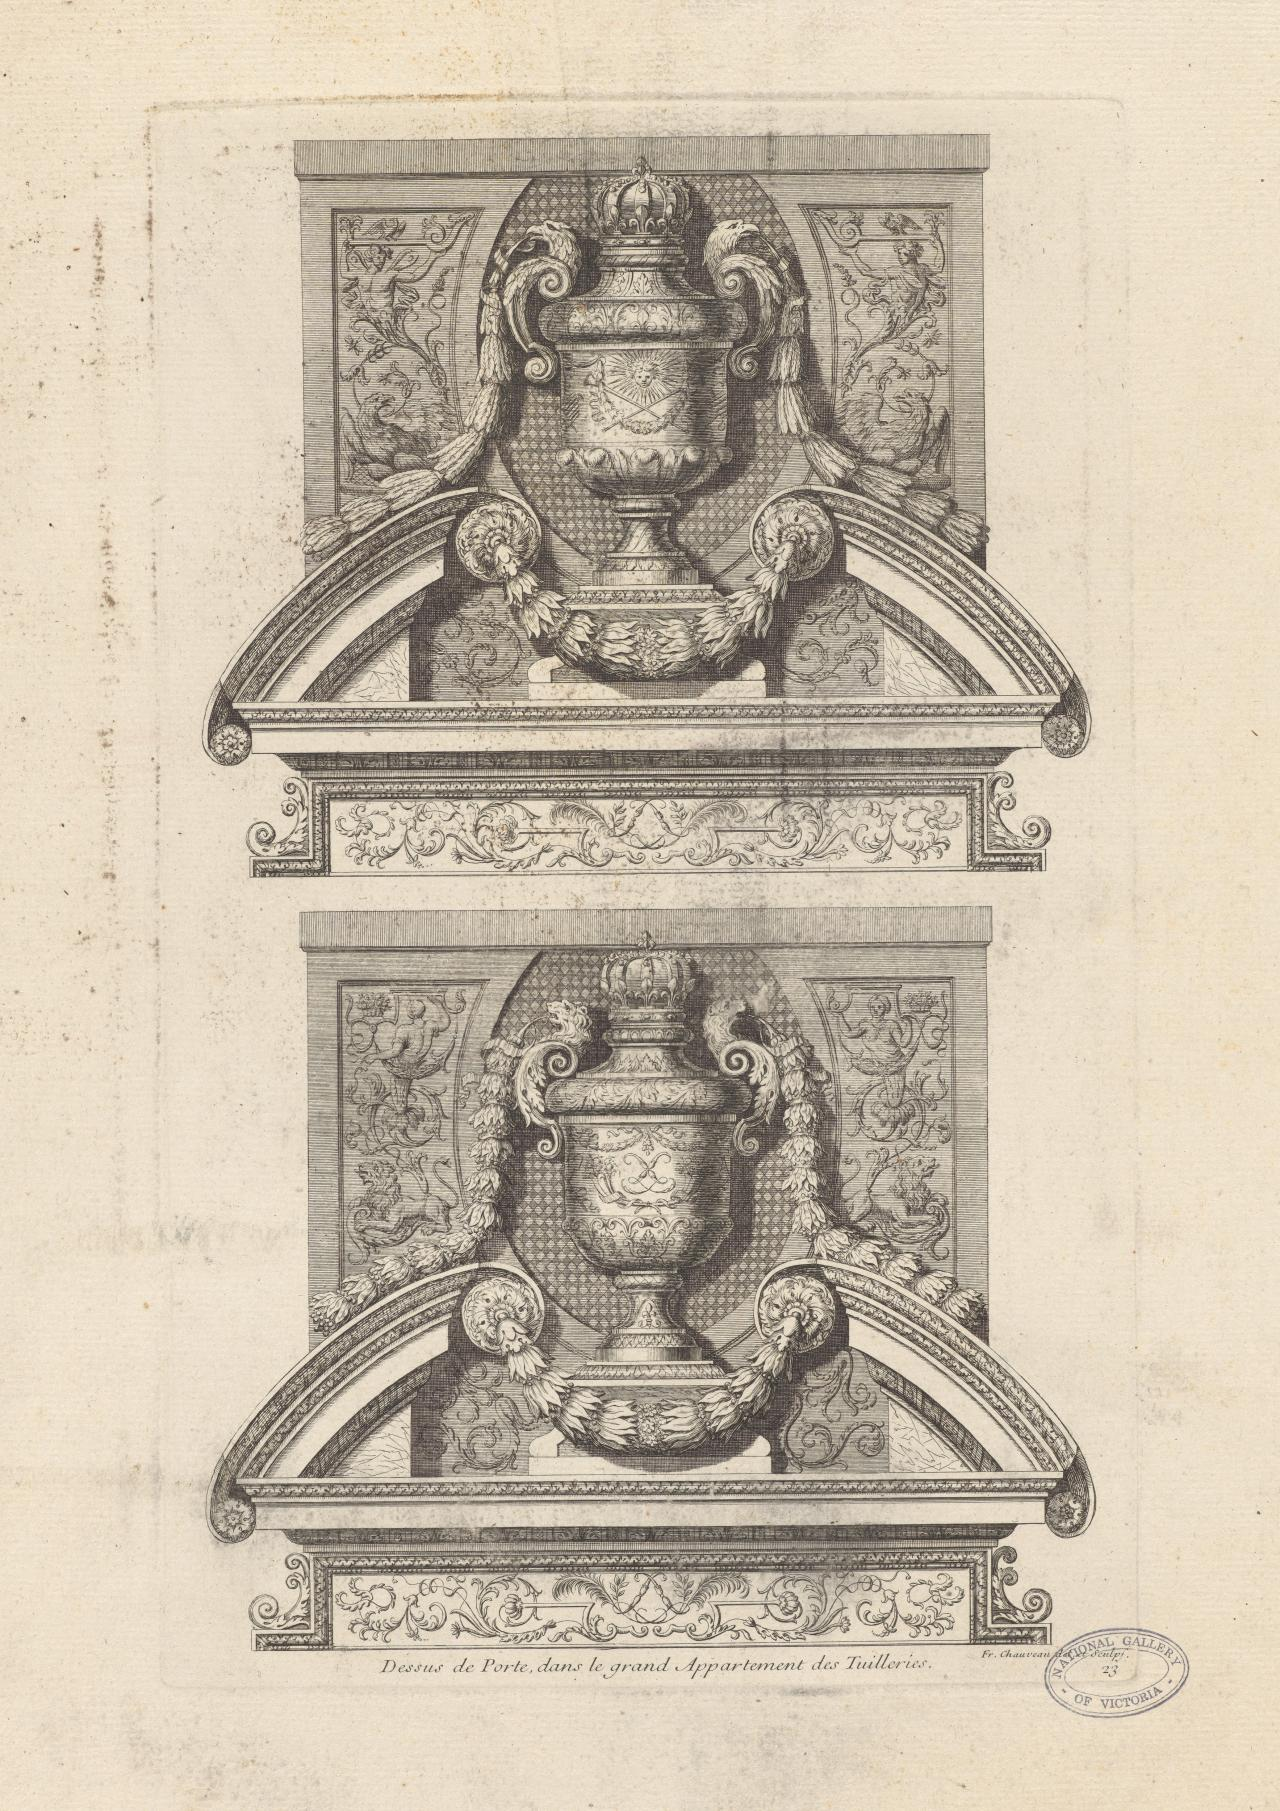 Door lintels, in the Grand Apartment of Tuileries Palace